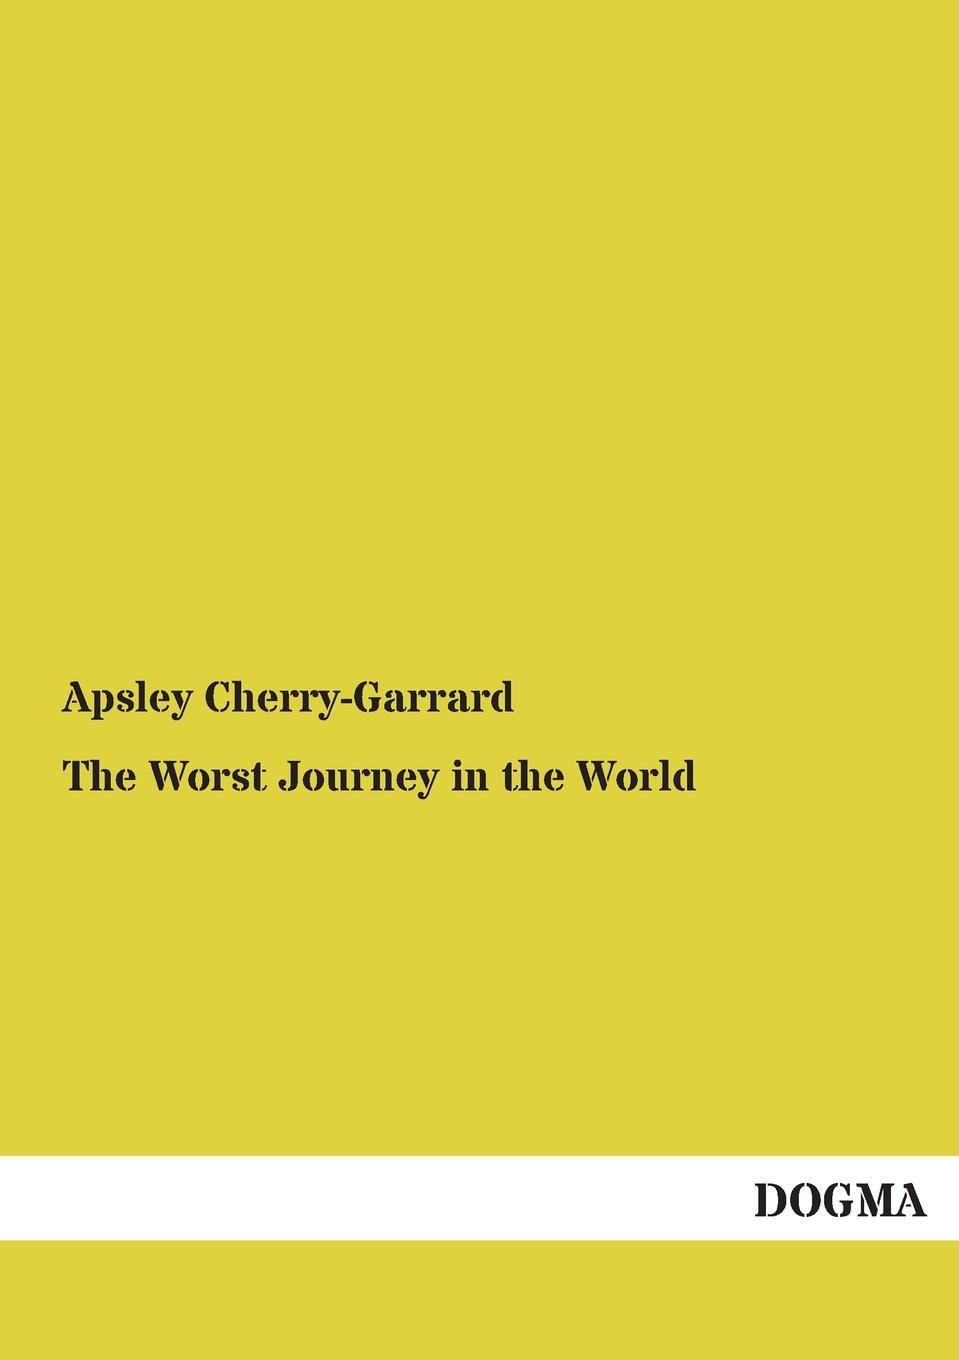 Apsley Cherry-Garrard The Worst Journey in the World robert falcon scott last expedition volume 2